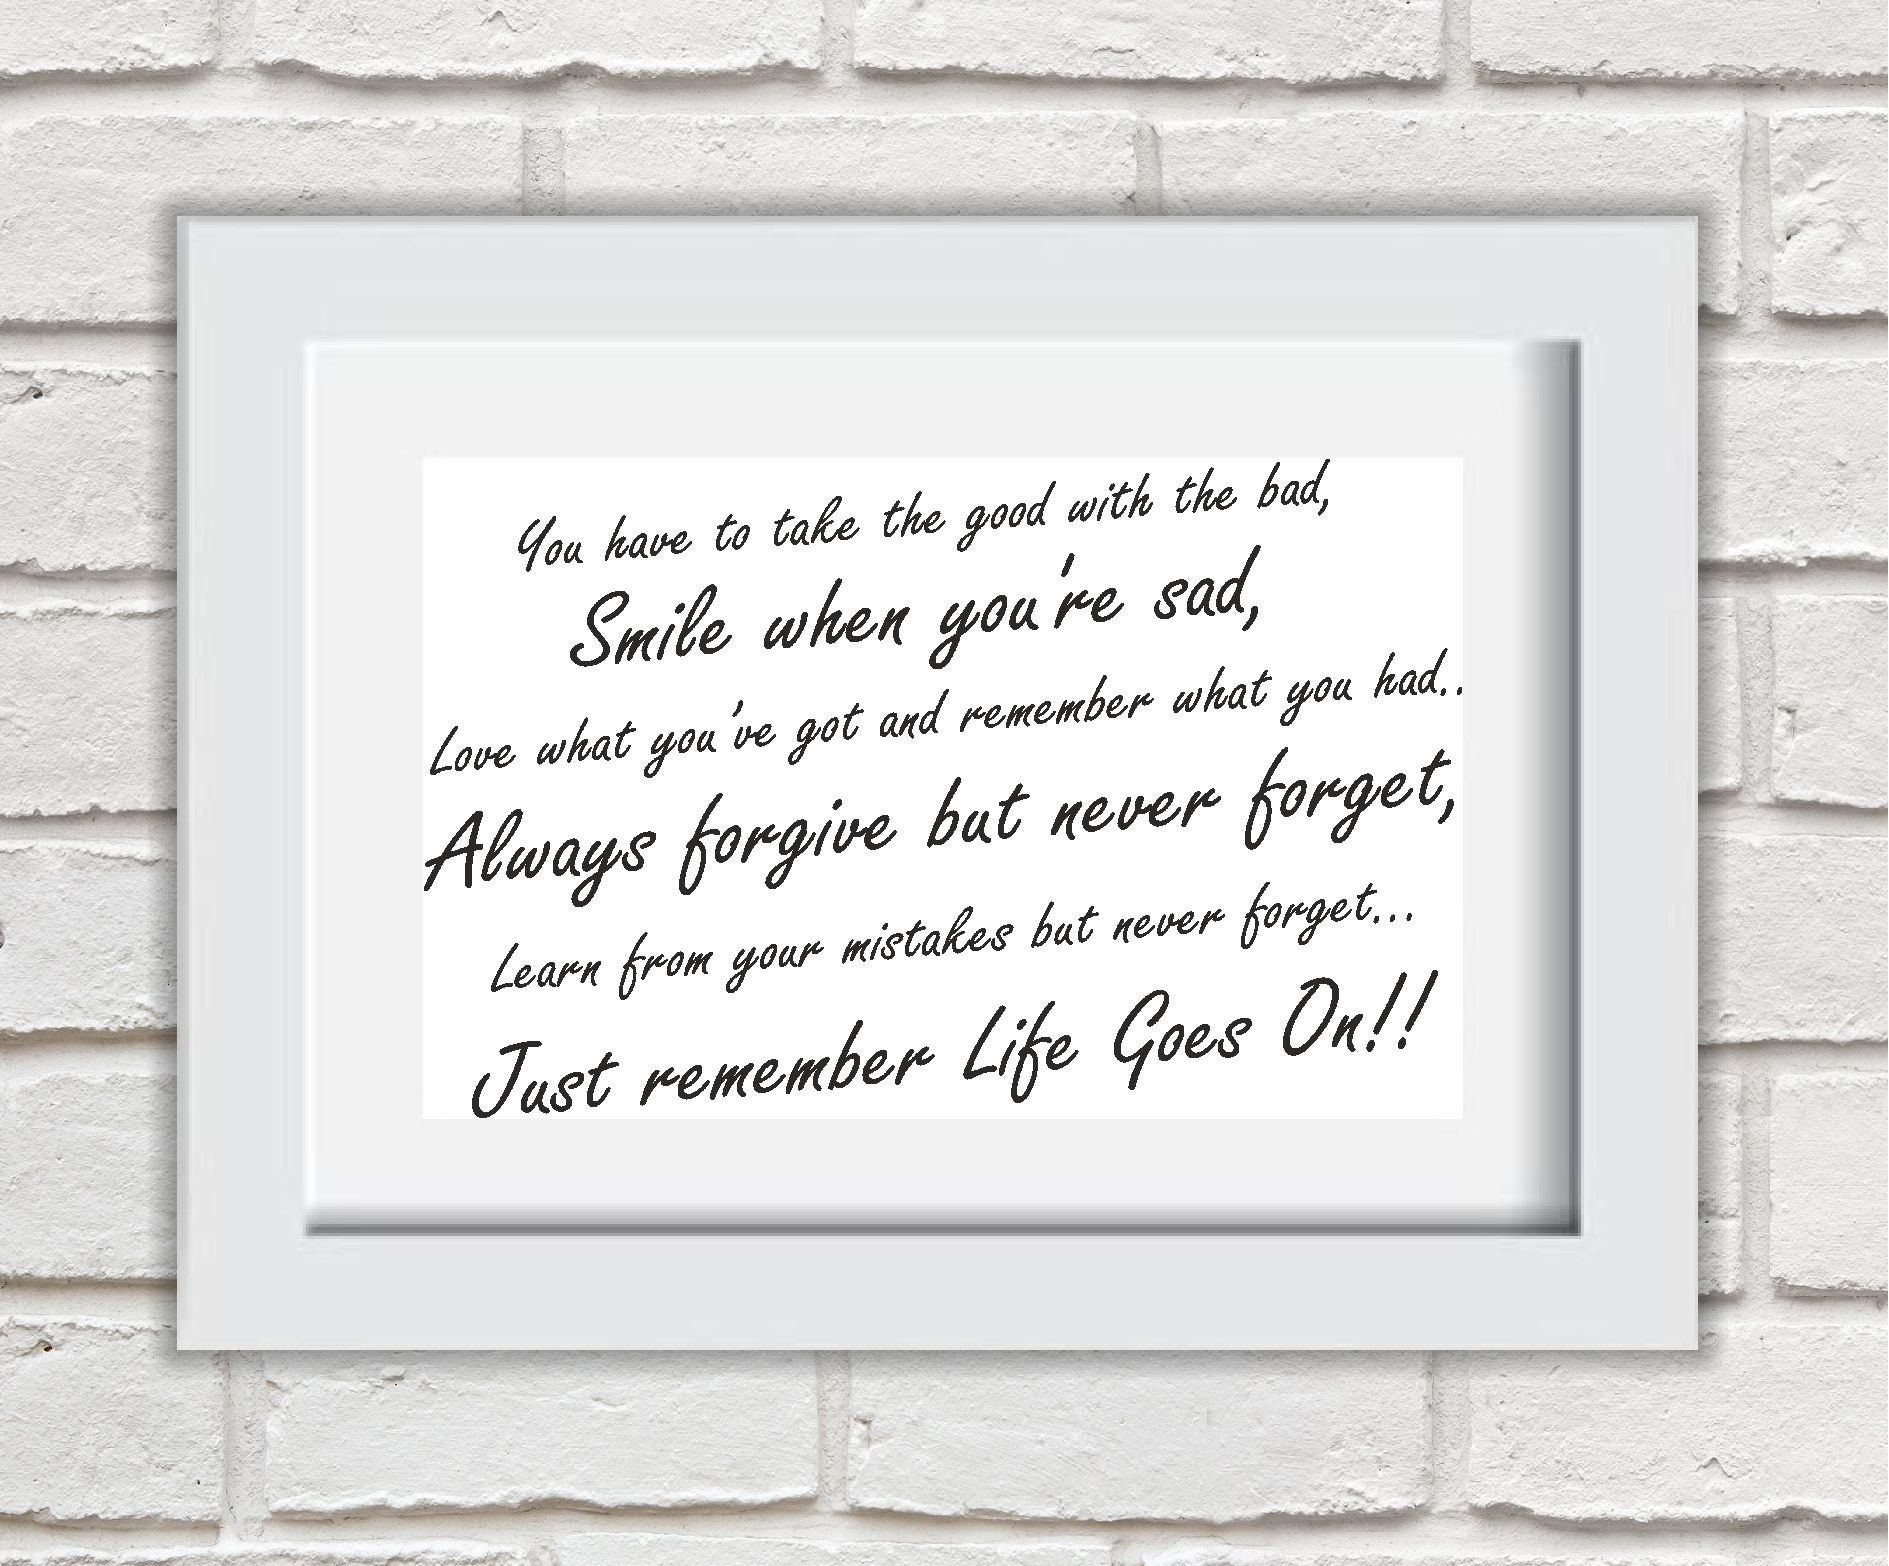 Life Goes On Framed Quote Print Mounted Word Art Wall Art | Etsy